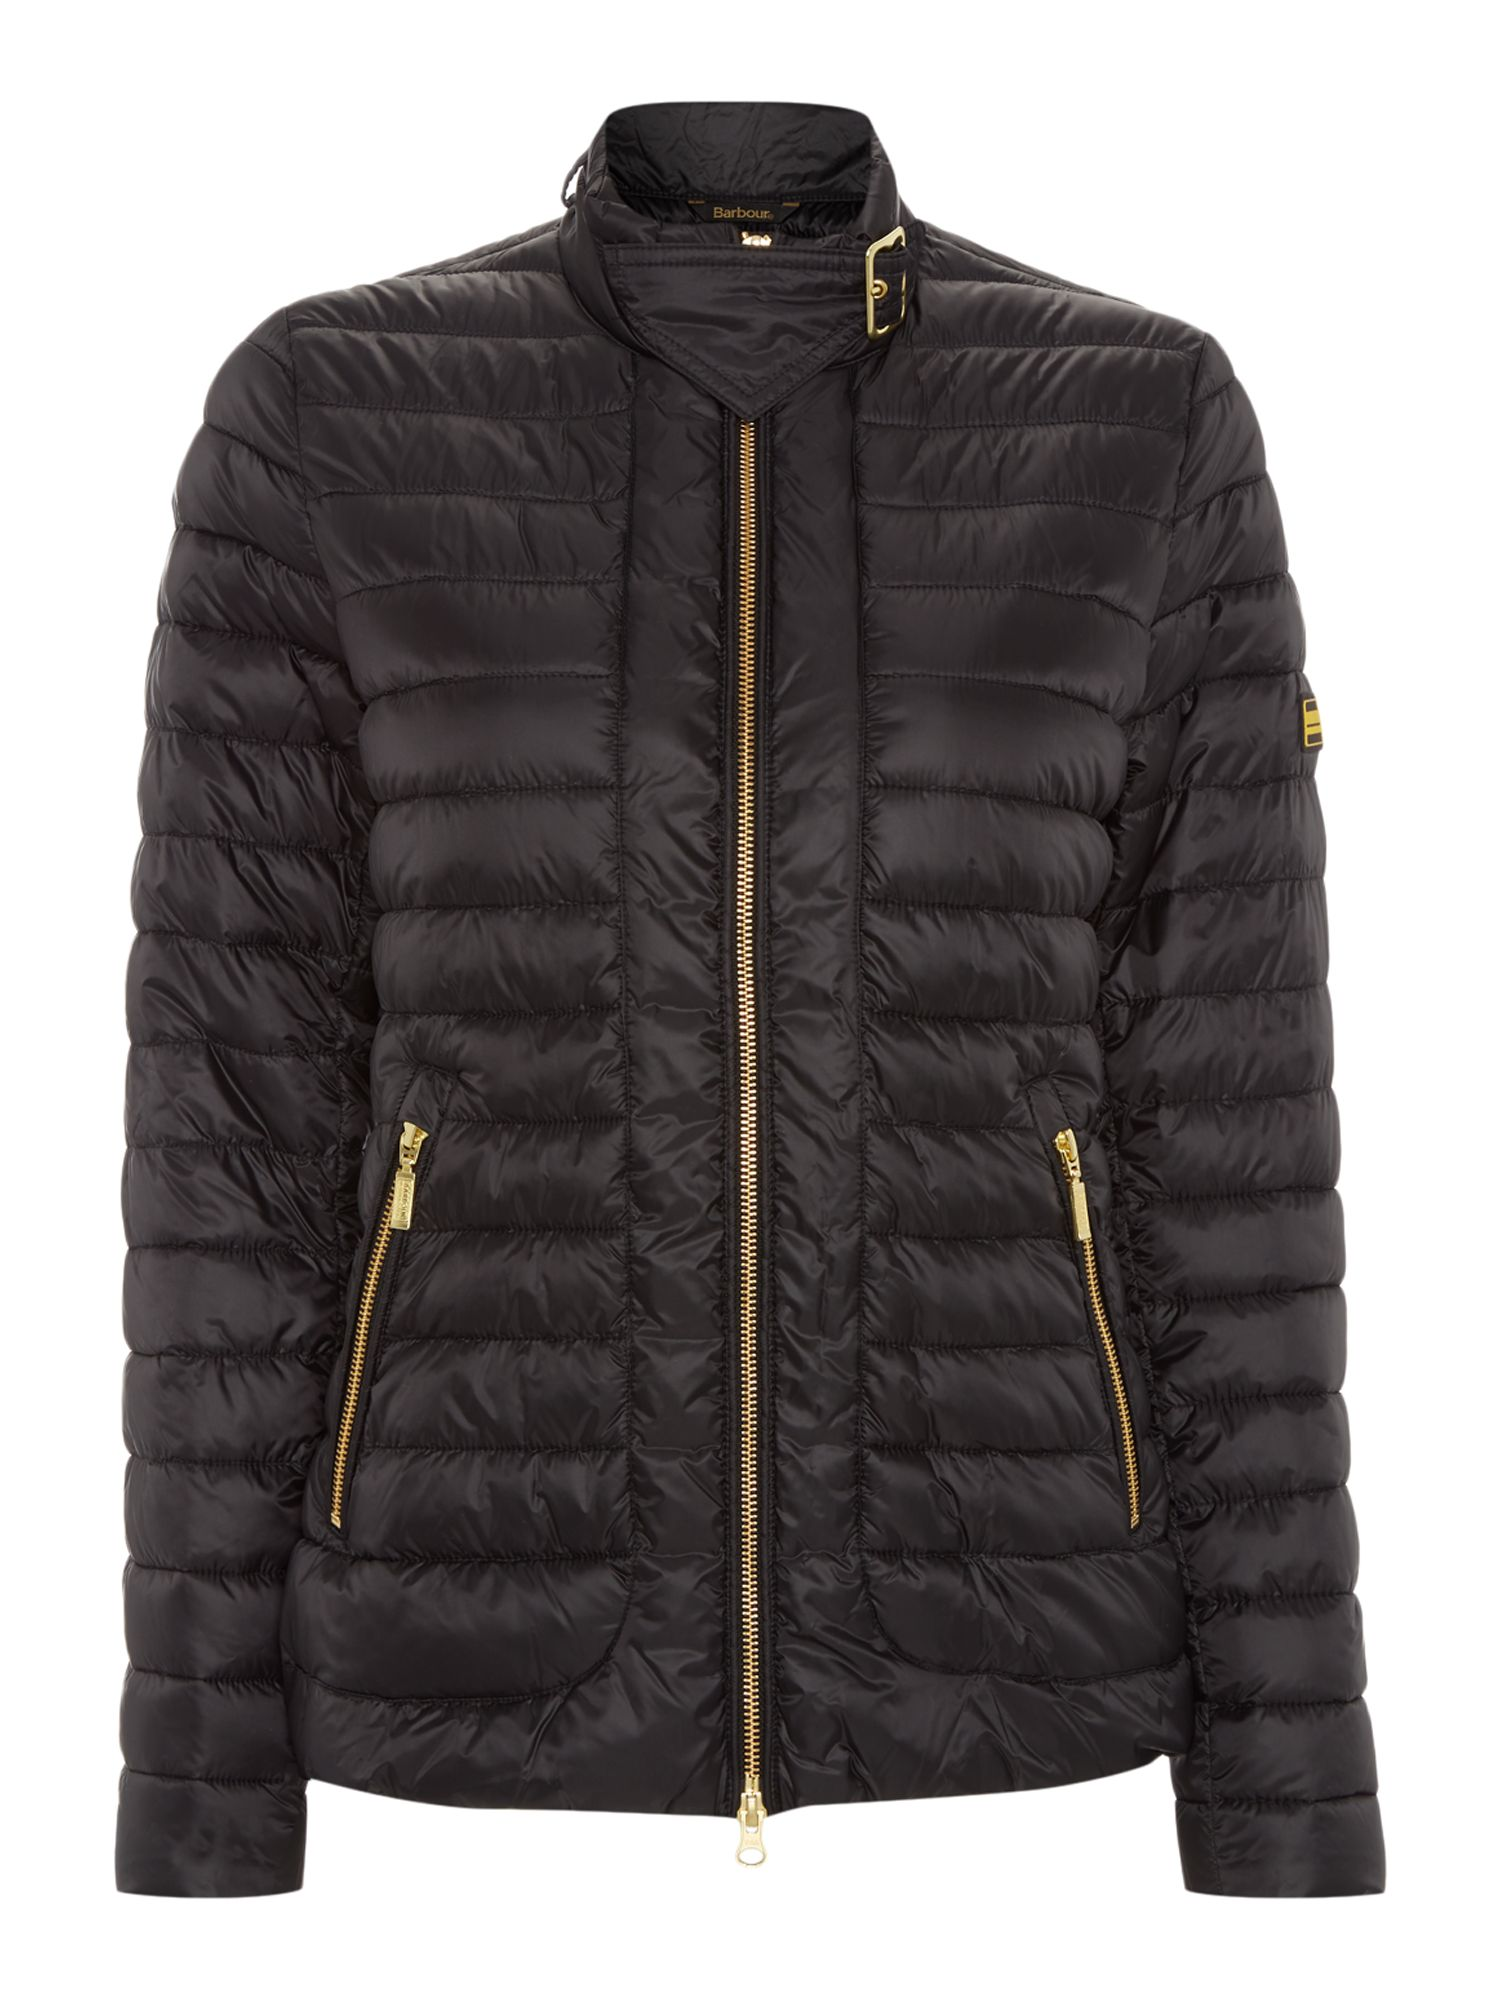 Barbour International Firth Quilt Jacket, Black